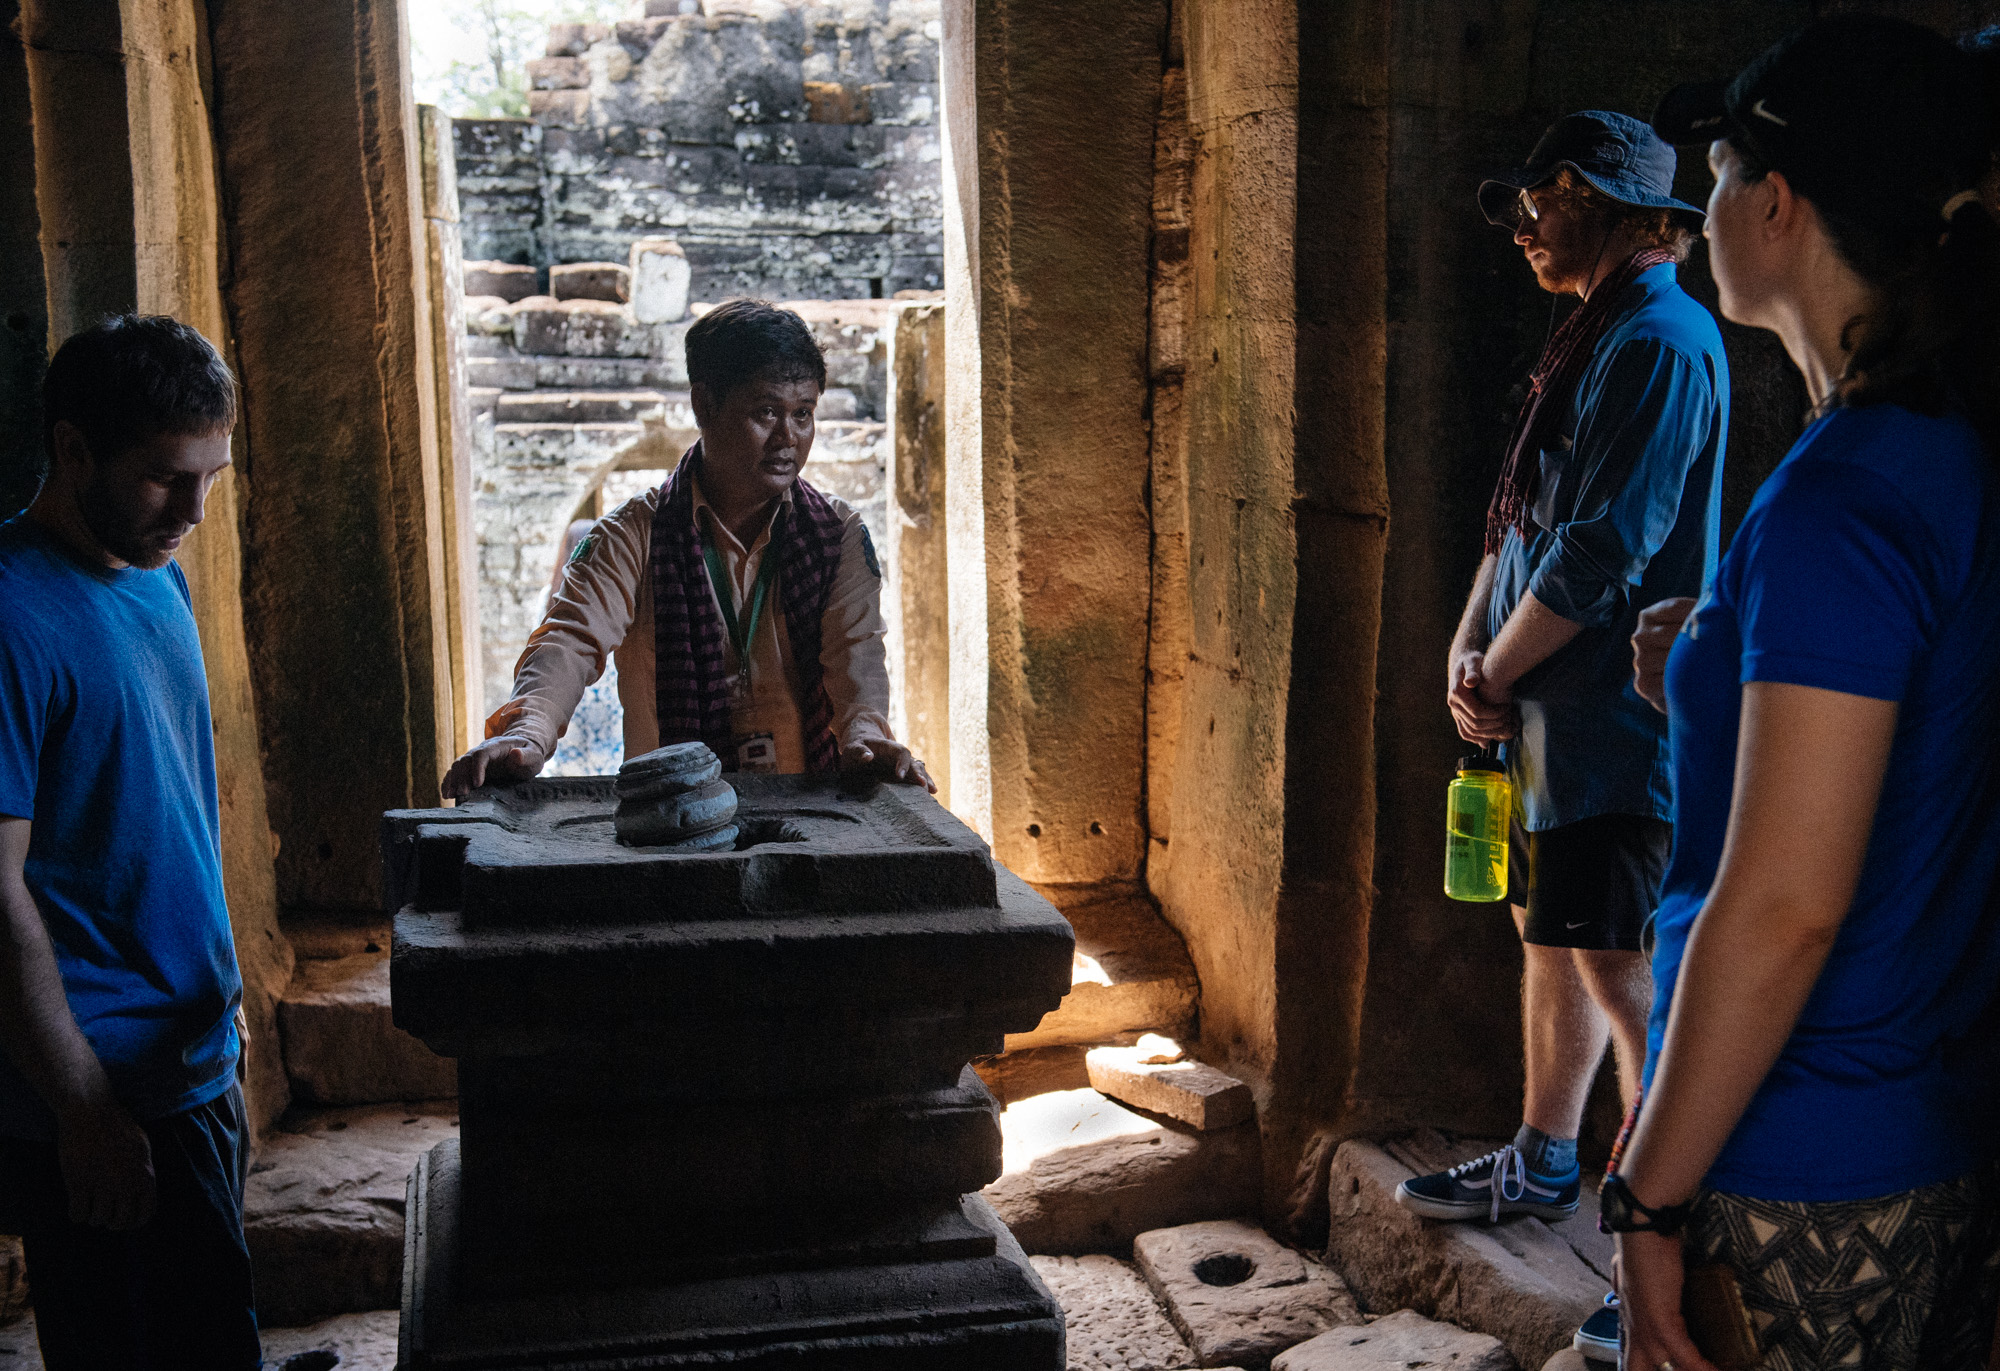 Tour guide explains in Italian to tourists how the  Lingam  structures represent a phallus and womb. It is an abstract representation of the Hindu god Shiva. These sculptures can be found in almost every temple in Angkor.